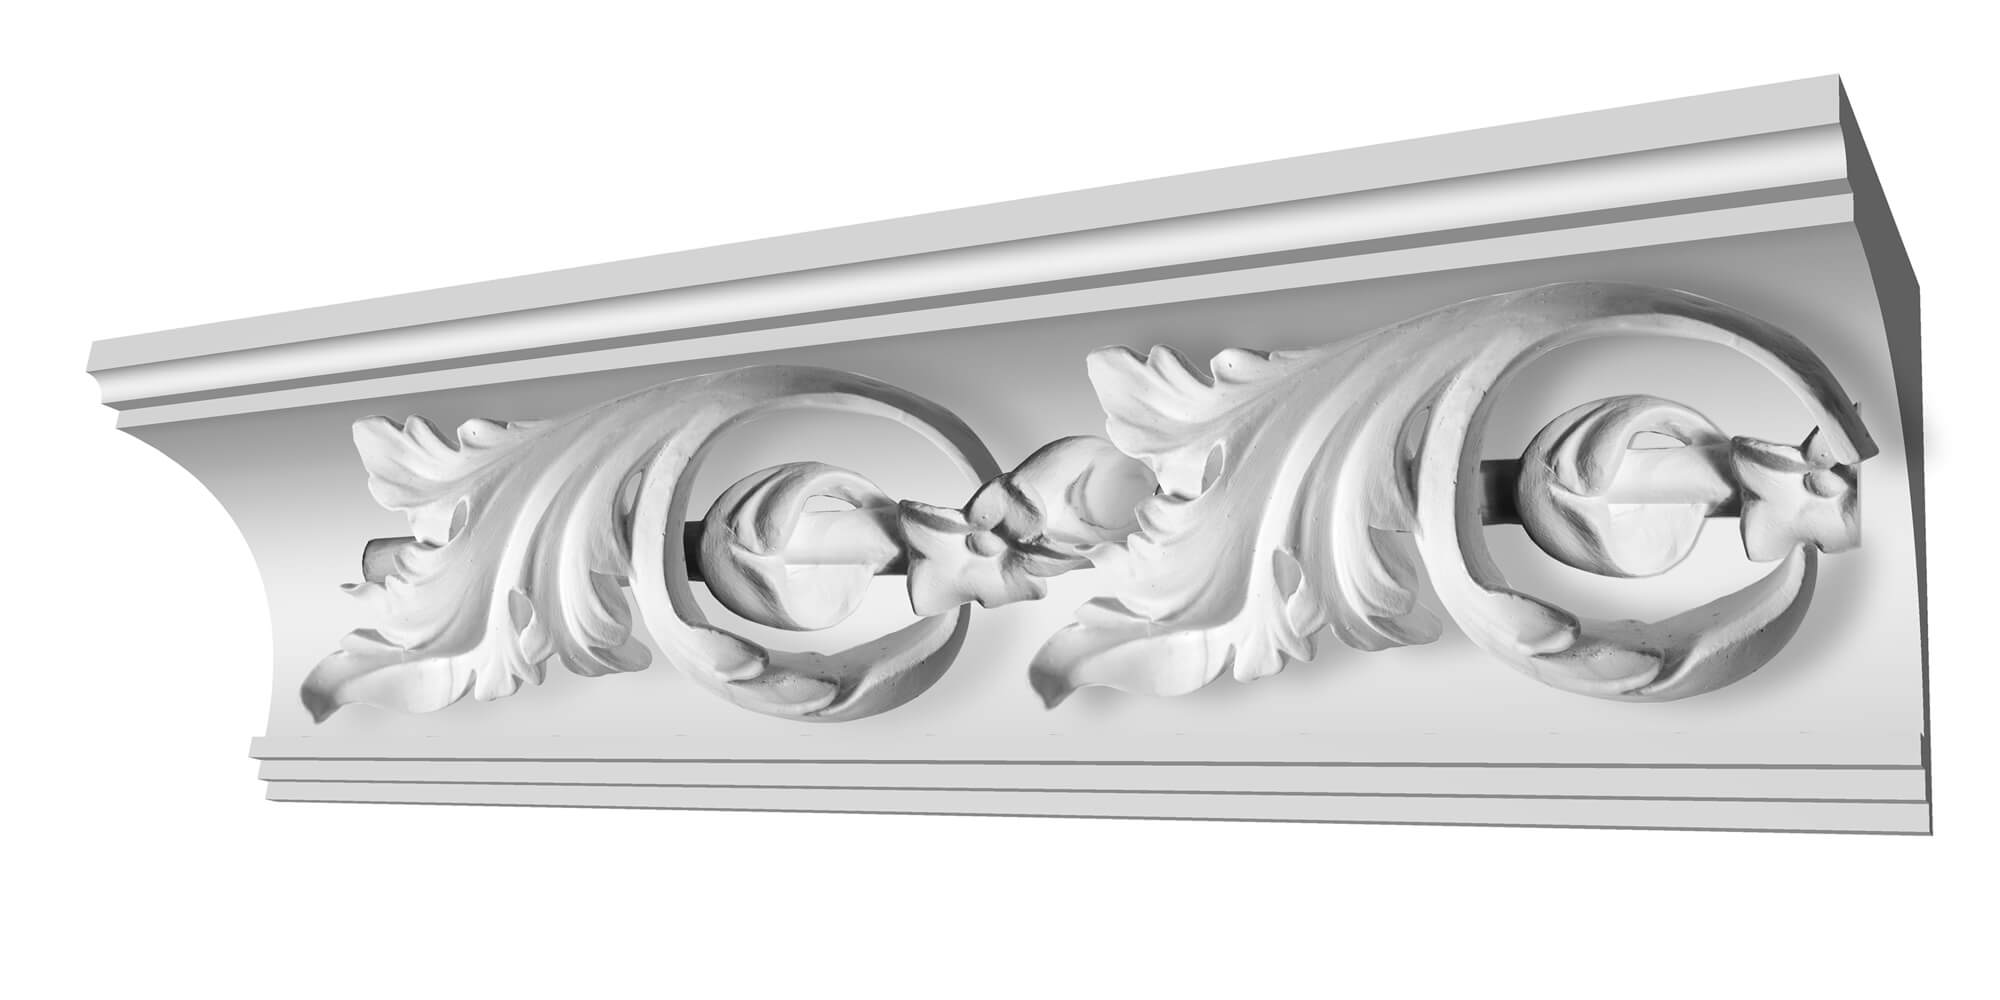 SUCCOTH PLASTER COVING DECORATION